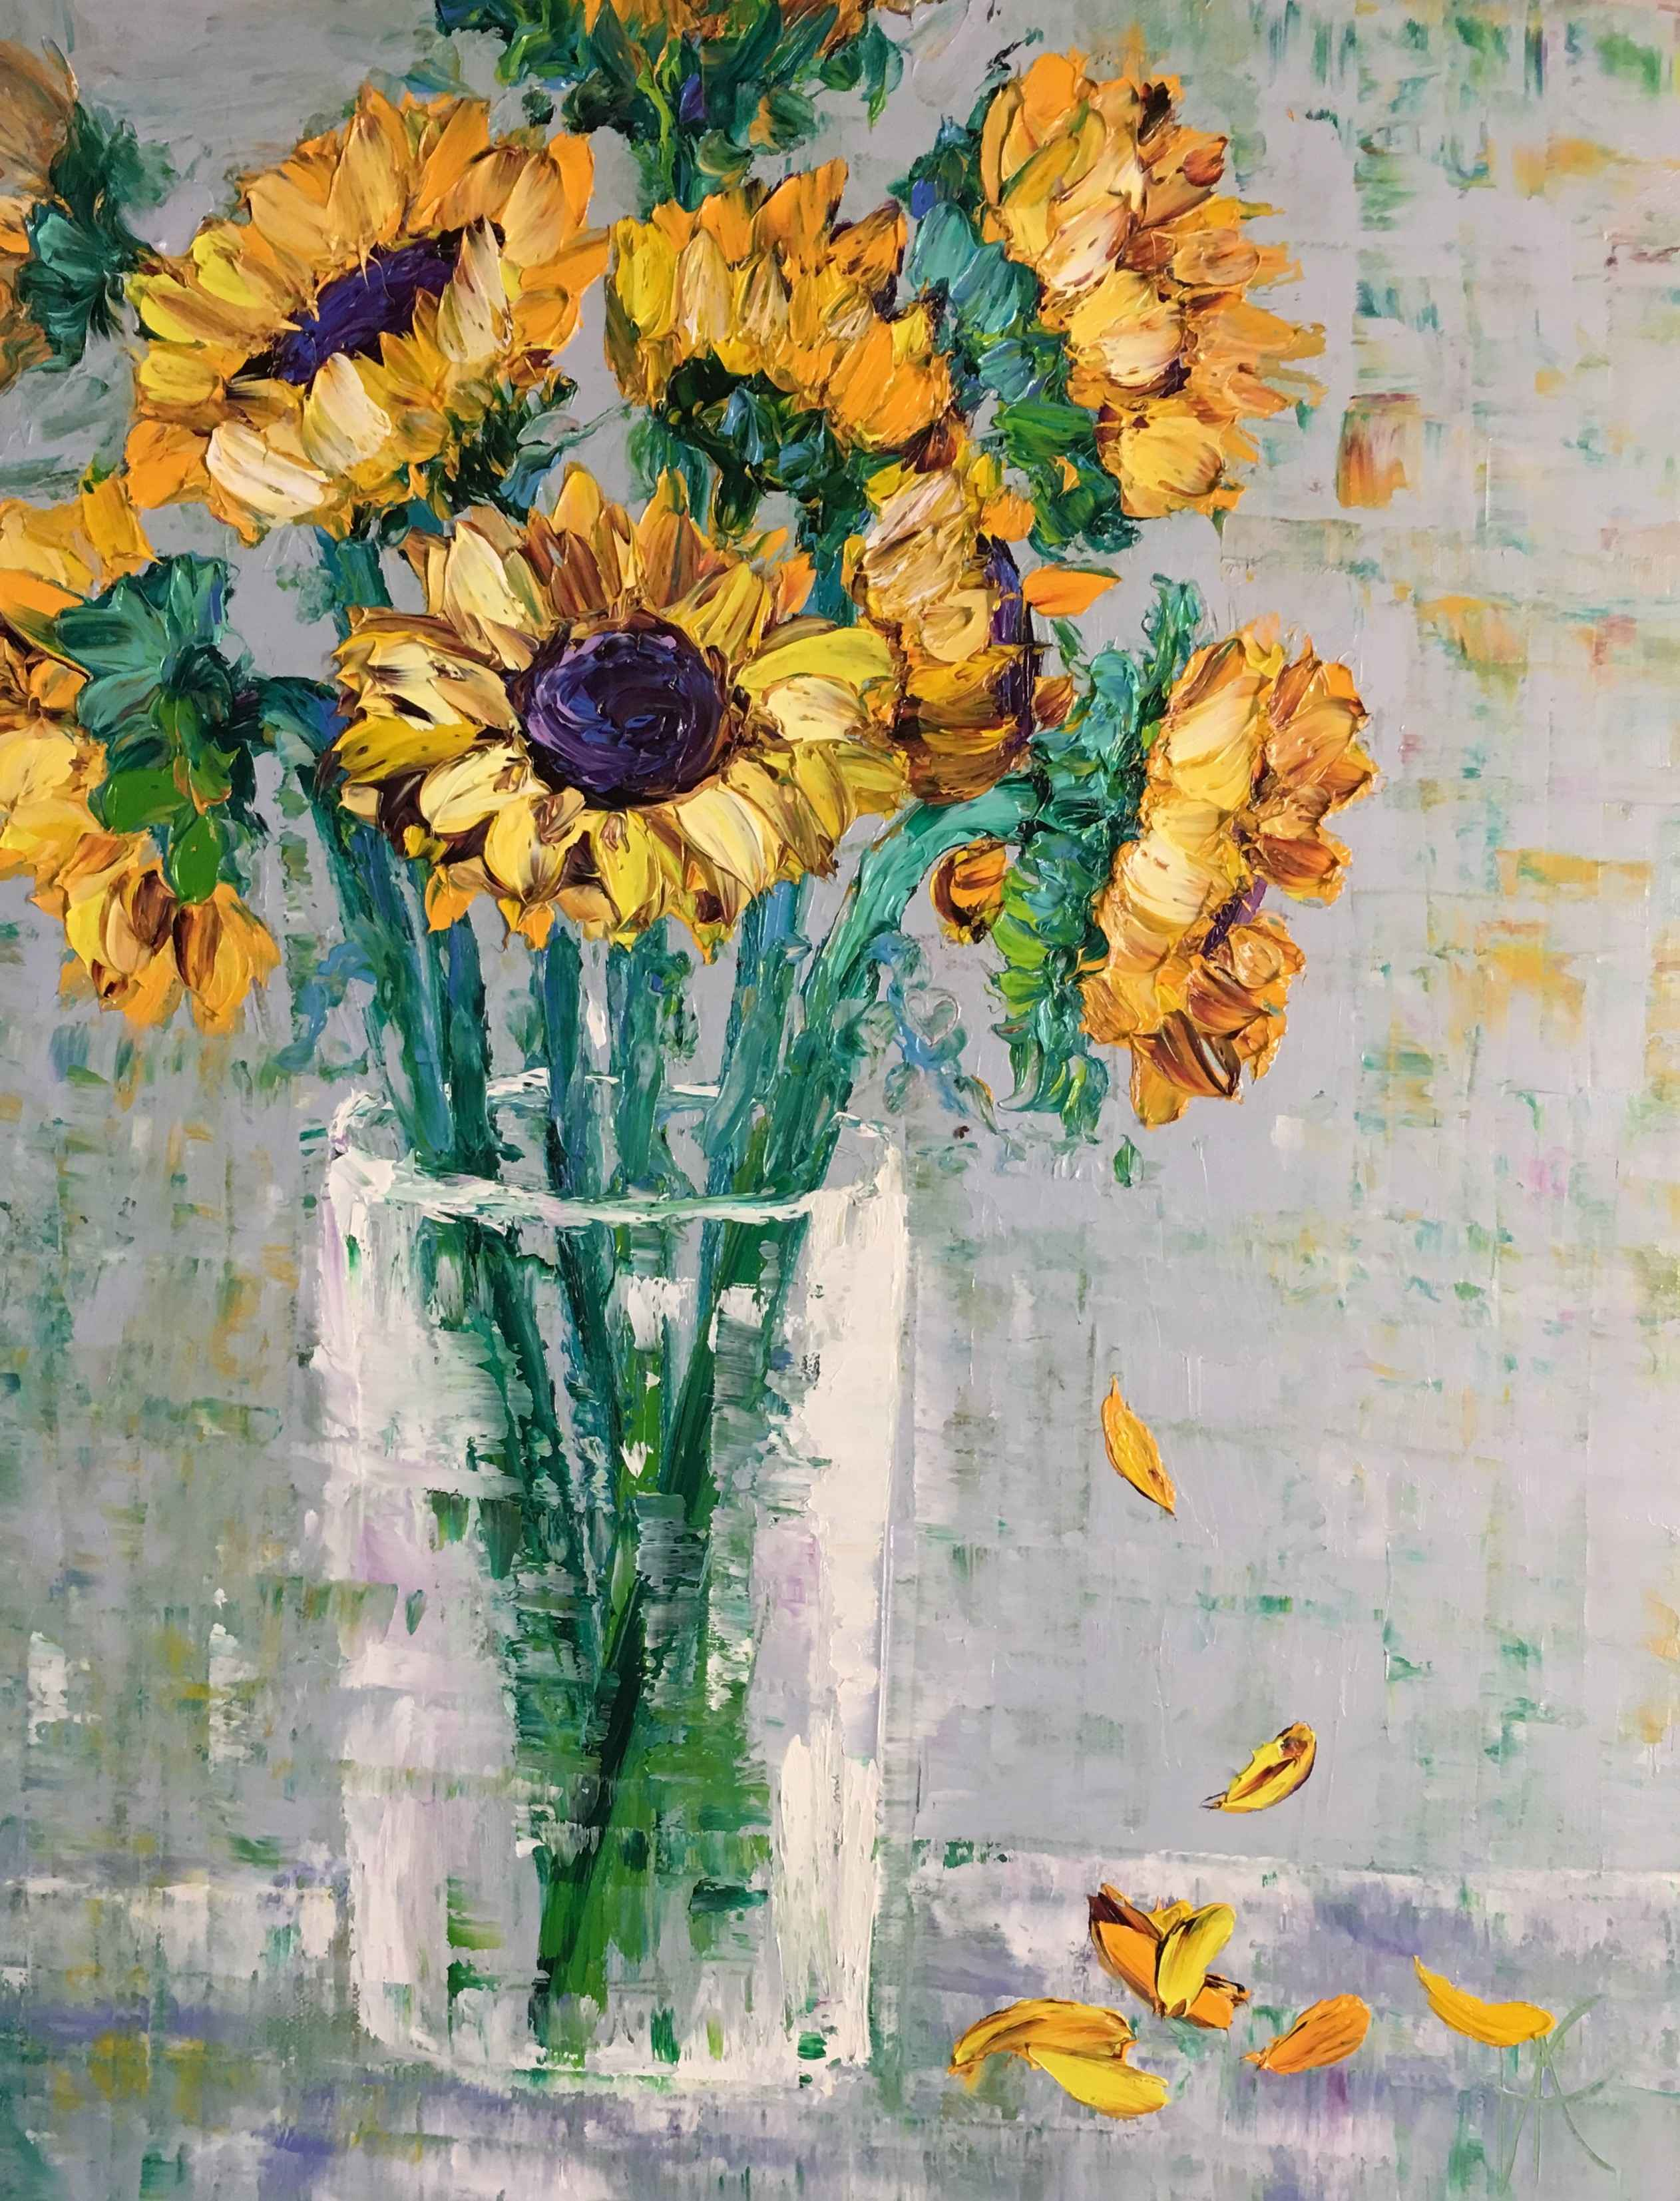 Sunflowers Revisited